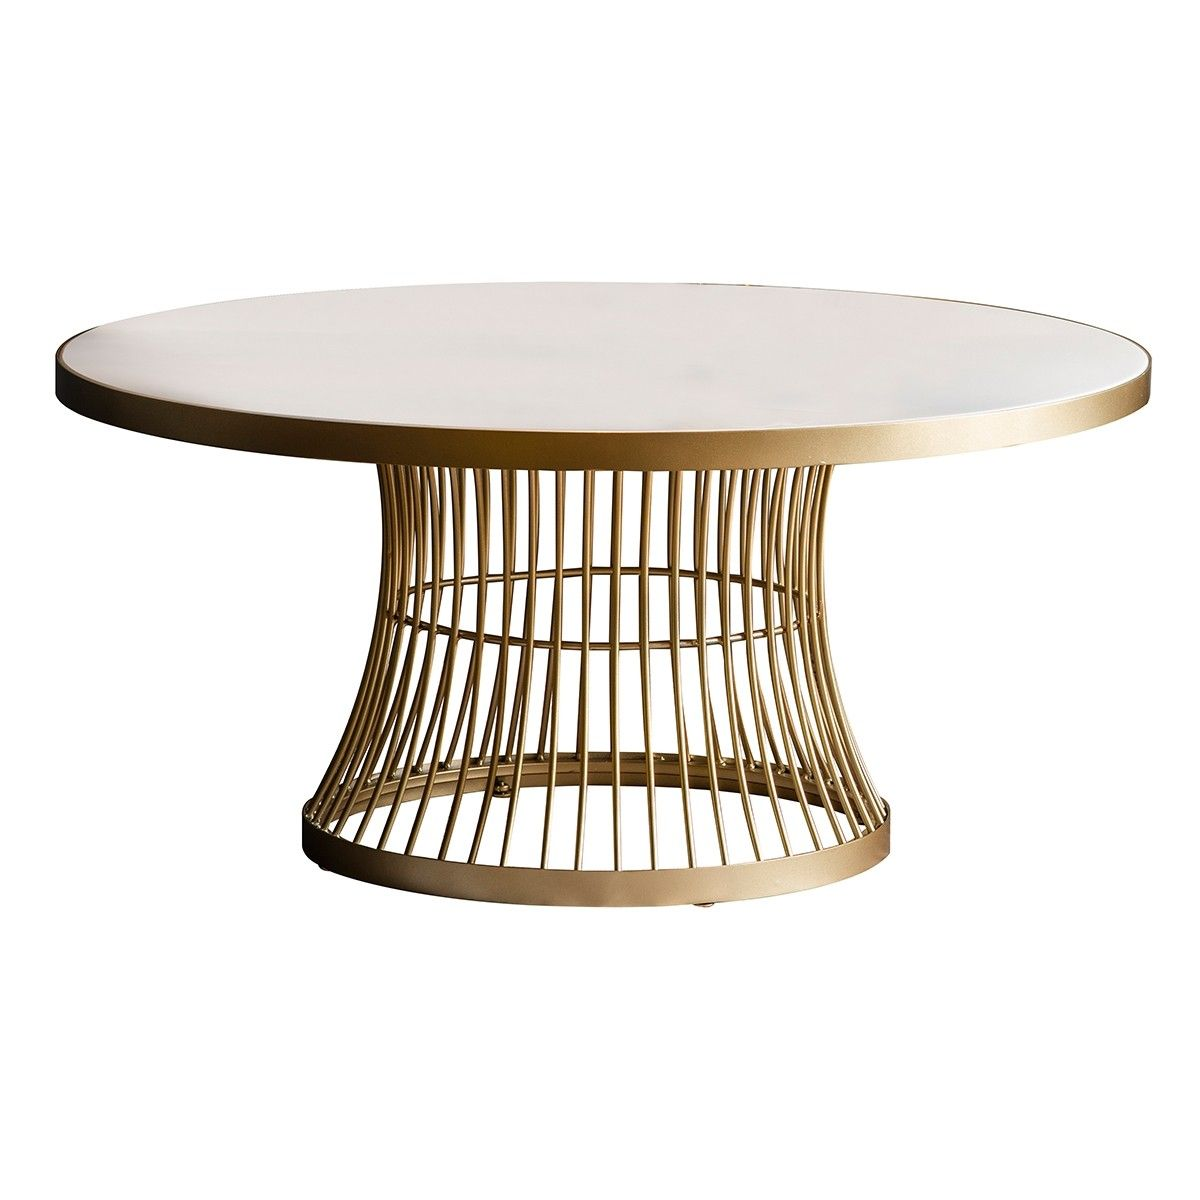 Pavilion Chic Round Coffee Table Pickford Pavilion Broadway Coffee Table Stylish Coffee Table Round Coffee Table [ 1200 x 1200 Pixel ]